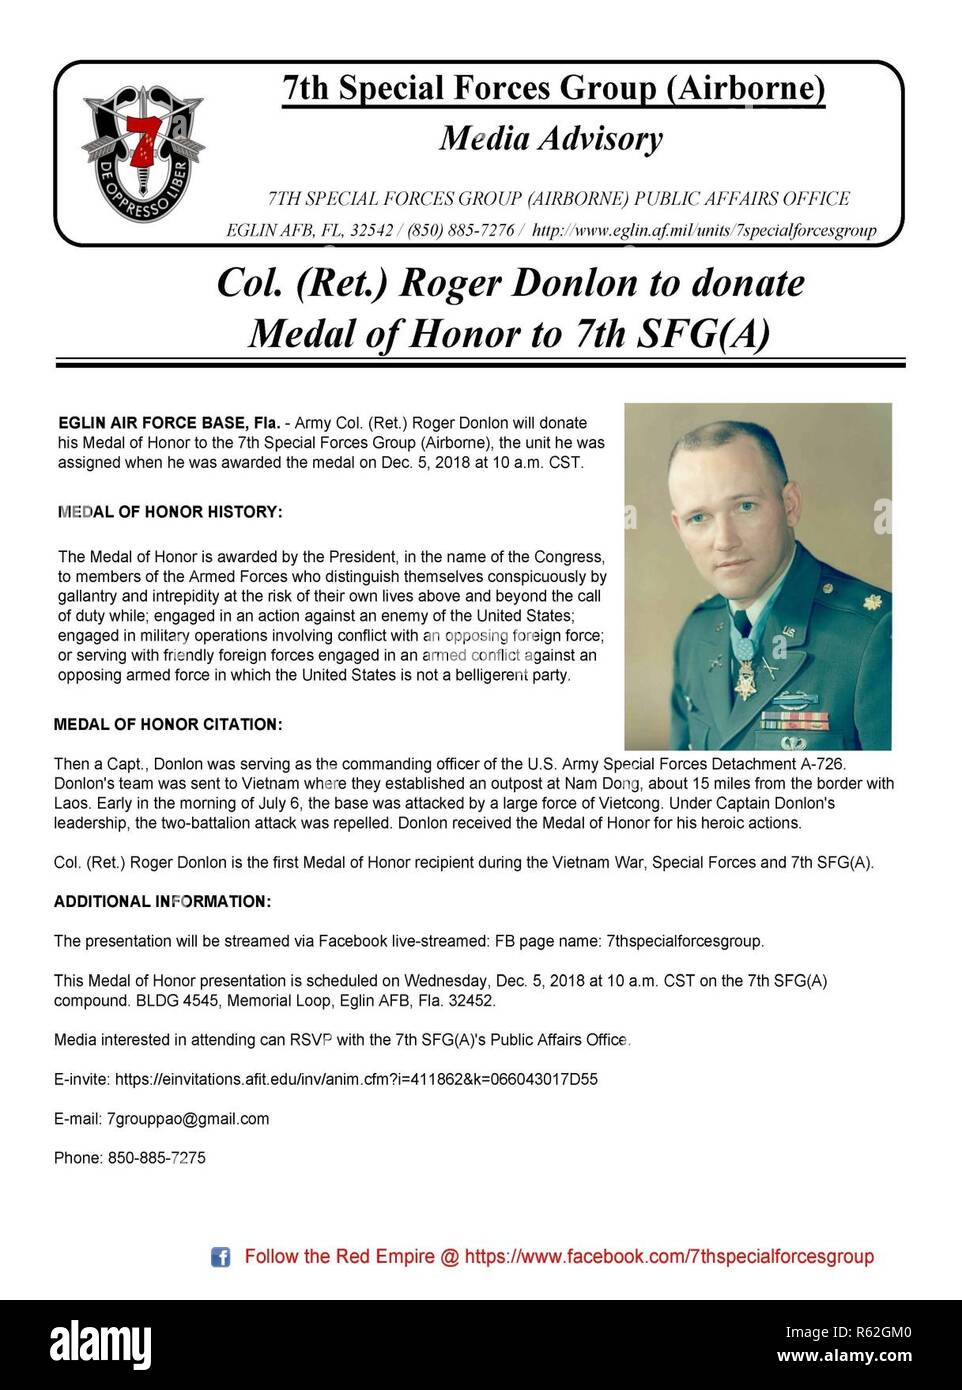 Army Col. (Ret.) Roger Donlon will donate his Medal of Honor to the 7th Special Forces Group (Airborne), the unit he was assigned when he was awarded the medal on Dec. 5, 2018 at 10 a.m. CST. Then a Capt., Donlon served as the commanding officer of the U.S. Army Special Forces Detachment A-726. Donlon's team was sent to Vietnam where they established an outpost at Nam Dong, about 15 miles from the border with Laos. Early in the morning of July 6, the base was attacked by a large force of Vietcong. Under Captain Donlon's leadership, the two-battalion attack was repelled. Donlon received the Med Stock Photo